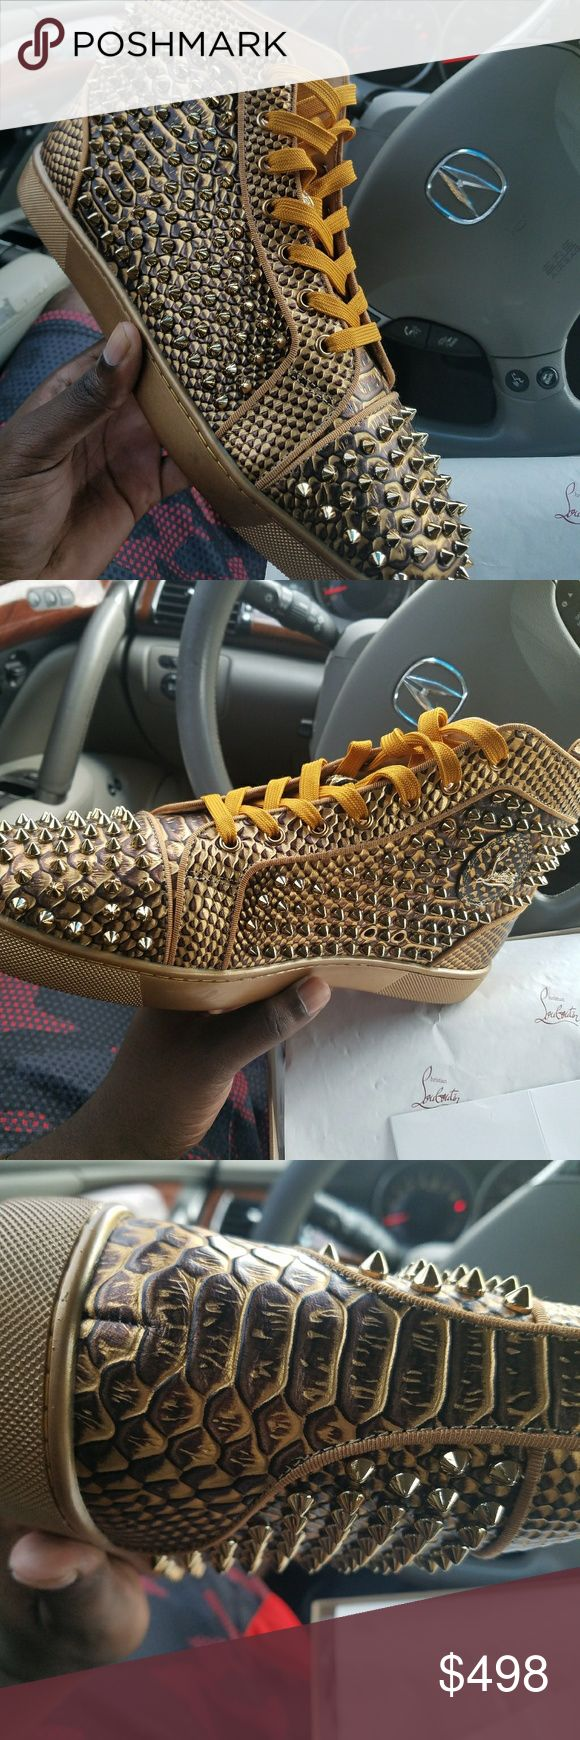 Authentic Gold PYTHON Christian Louboutin ‼️BRAND NEW STYLES IN‼️ ✅ All of our goods are ready to ship! Free 2-3 day with tracking✅ 📲 If you are serious please message the number in the bio or DM for price 📲 7704672974 ❌DO NOT WAIT ON YOUR ORDER! BECAUSE WE MIGHT NOT HAVE THE SAME STYLES/SIZES WITHIN DAYS! ❌ 🔌GET IT WHILE YOU CAN🔌  #sneakershouts #sneakeraddict #sneakerfreak #sneakerporn #style #fashion #luxurybrands #christianlouboutin #balenciaga #balenciagaparis #yeezy #yeezy350…